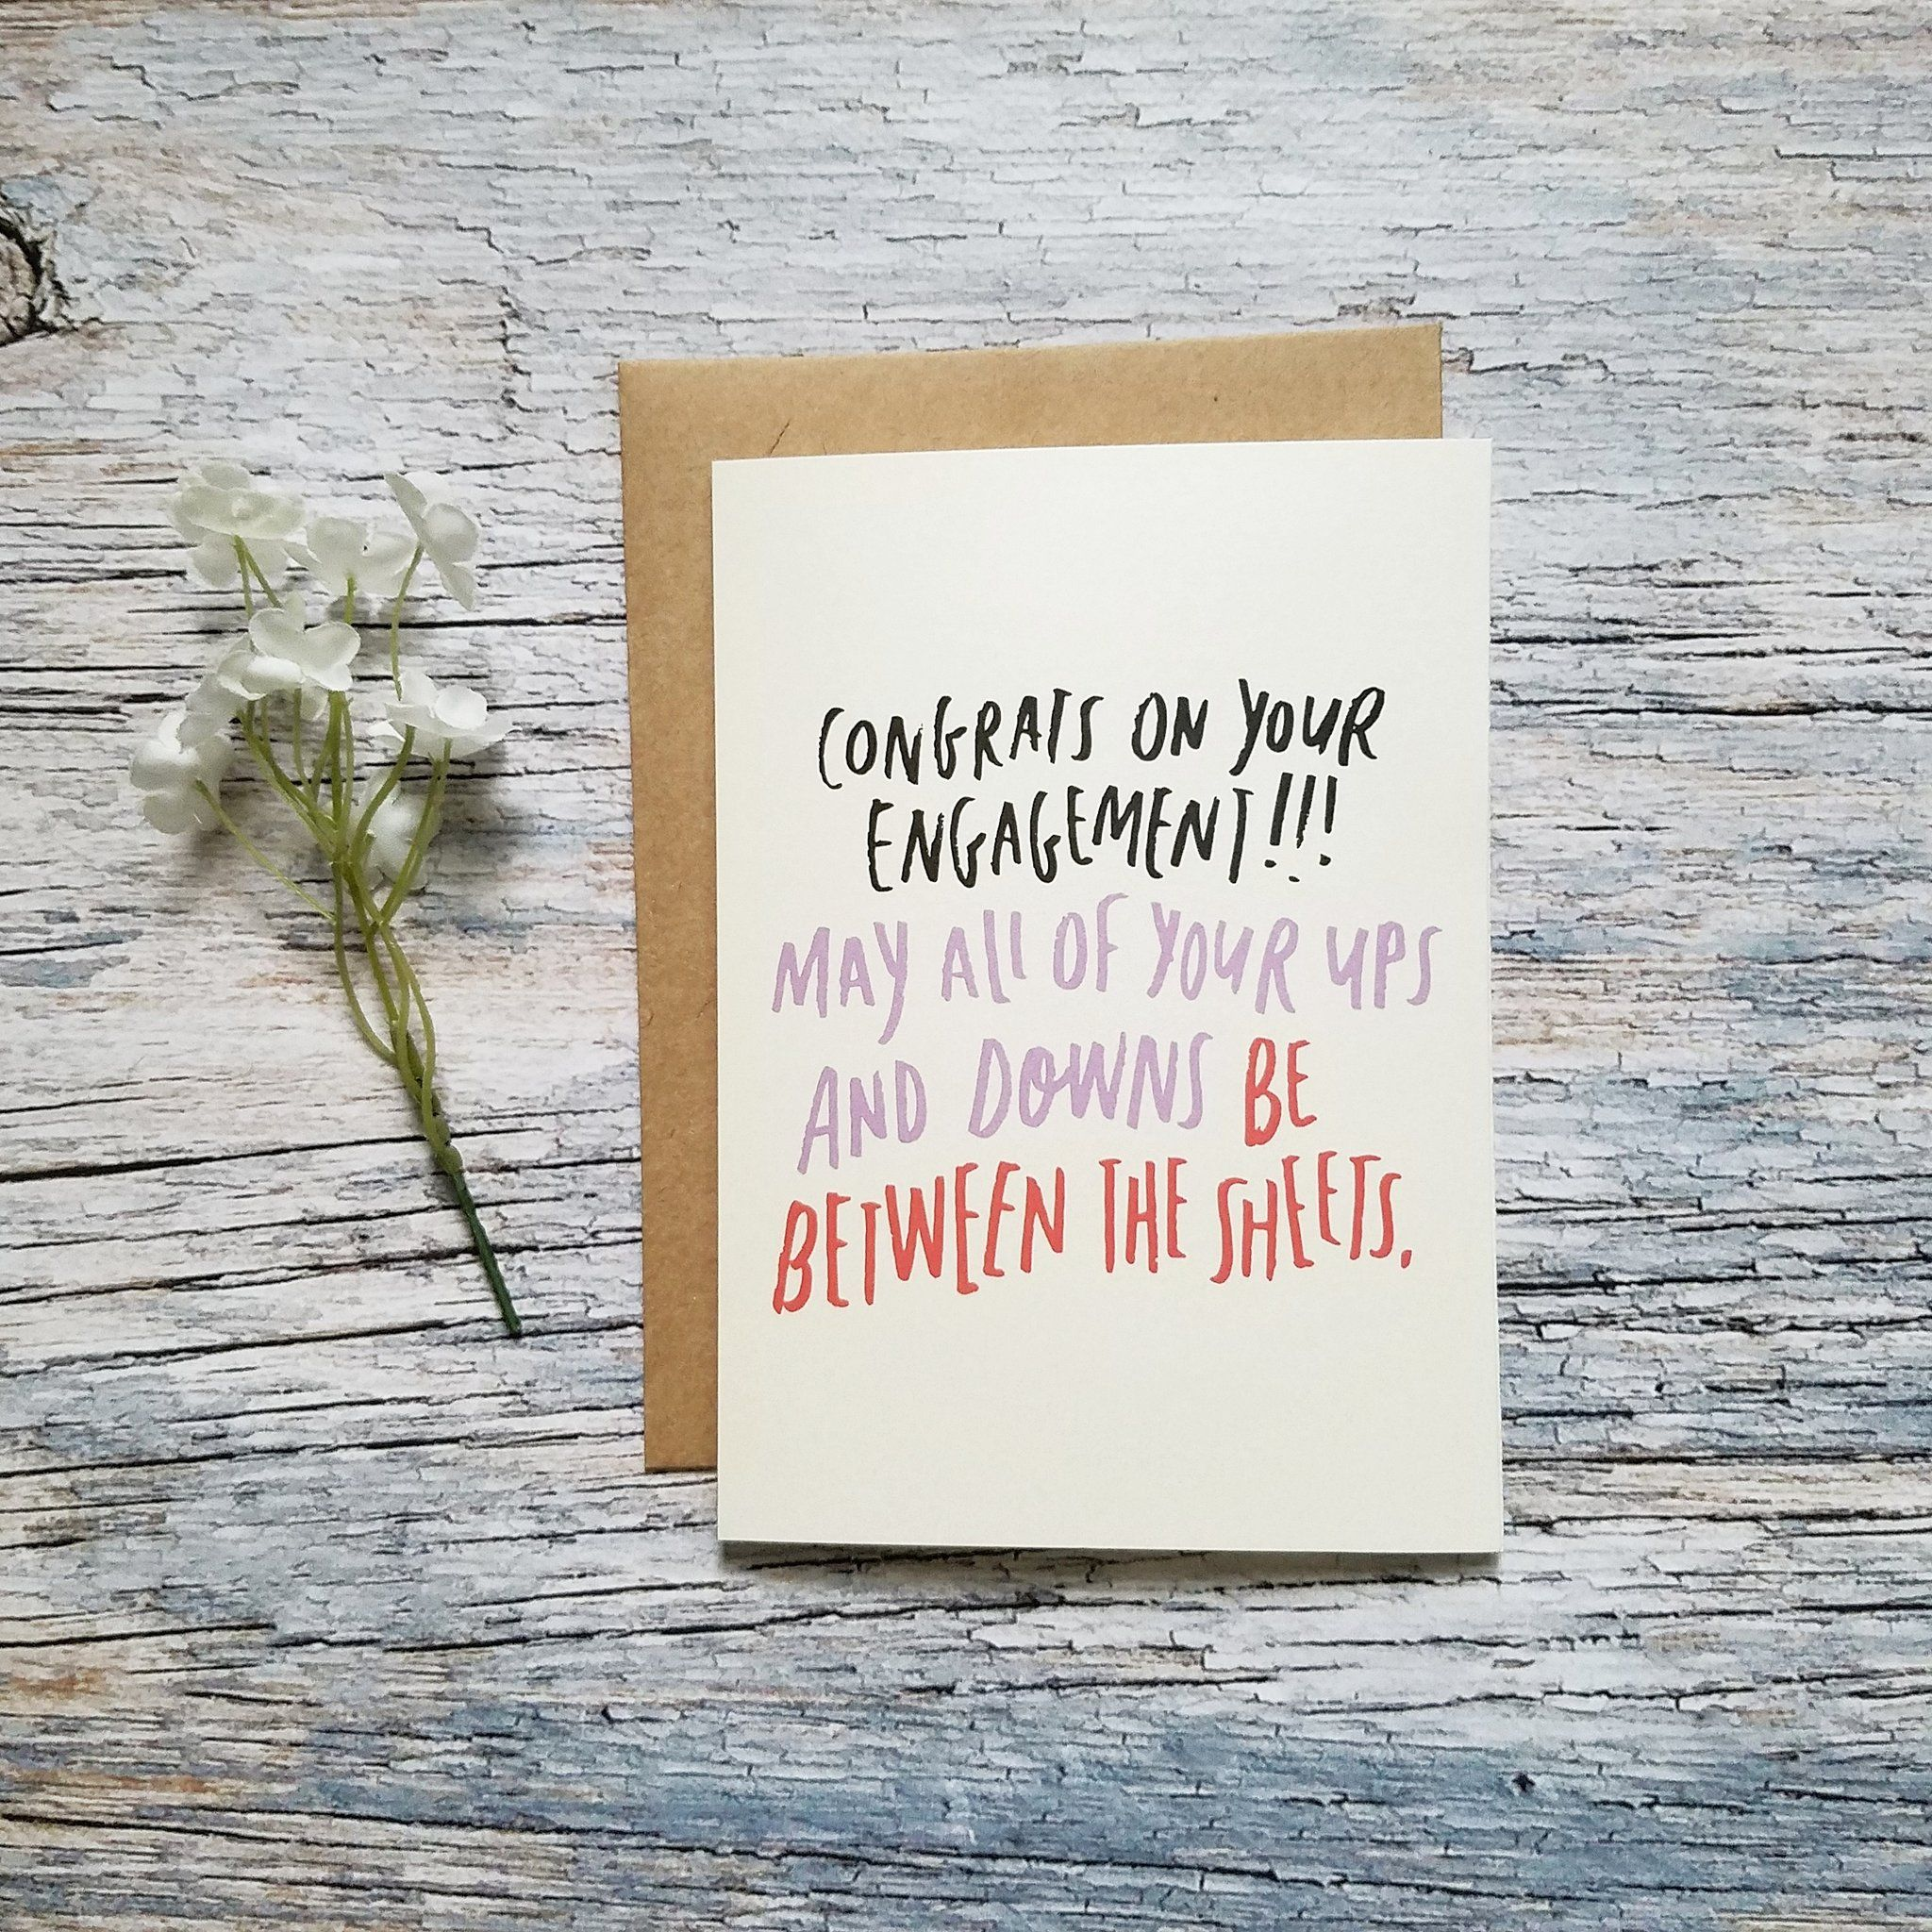 Funny Engagement greeting card - Ups and Downs Inuendo – Well Said